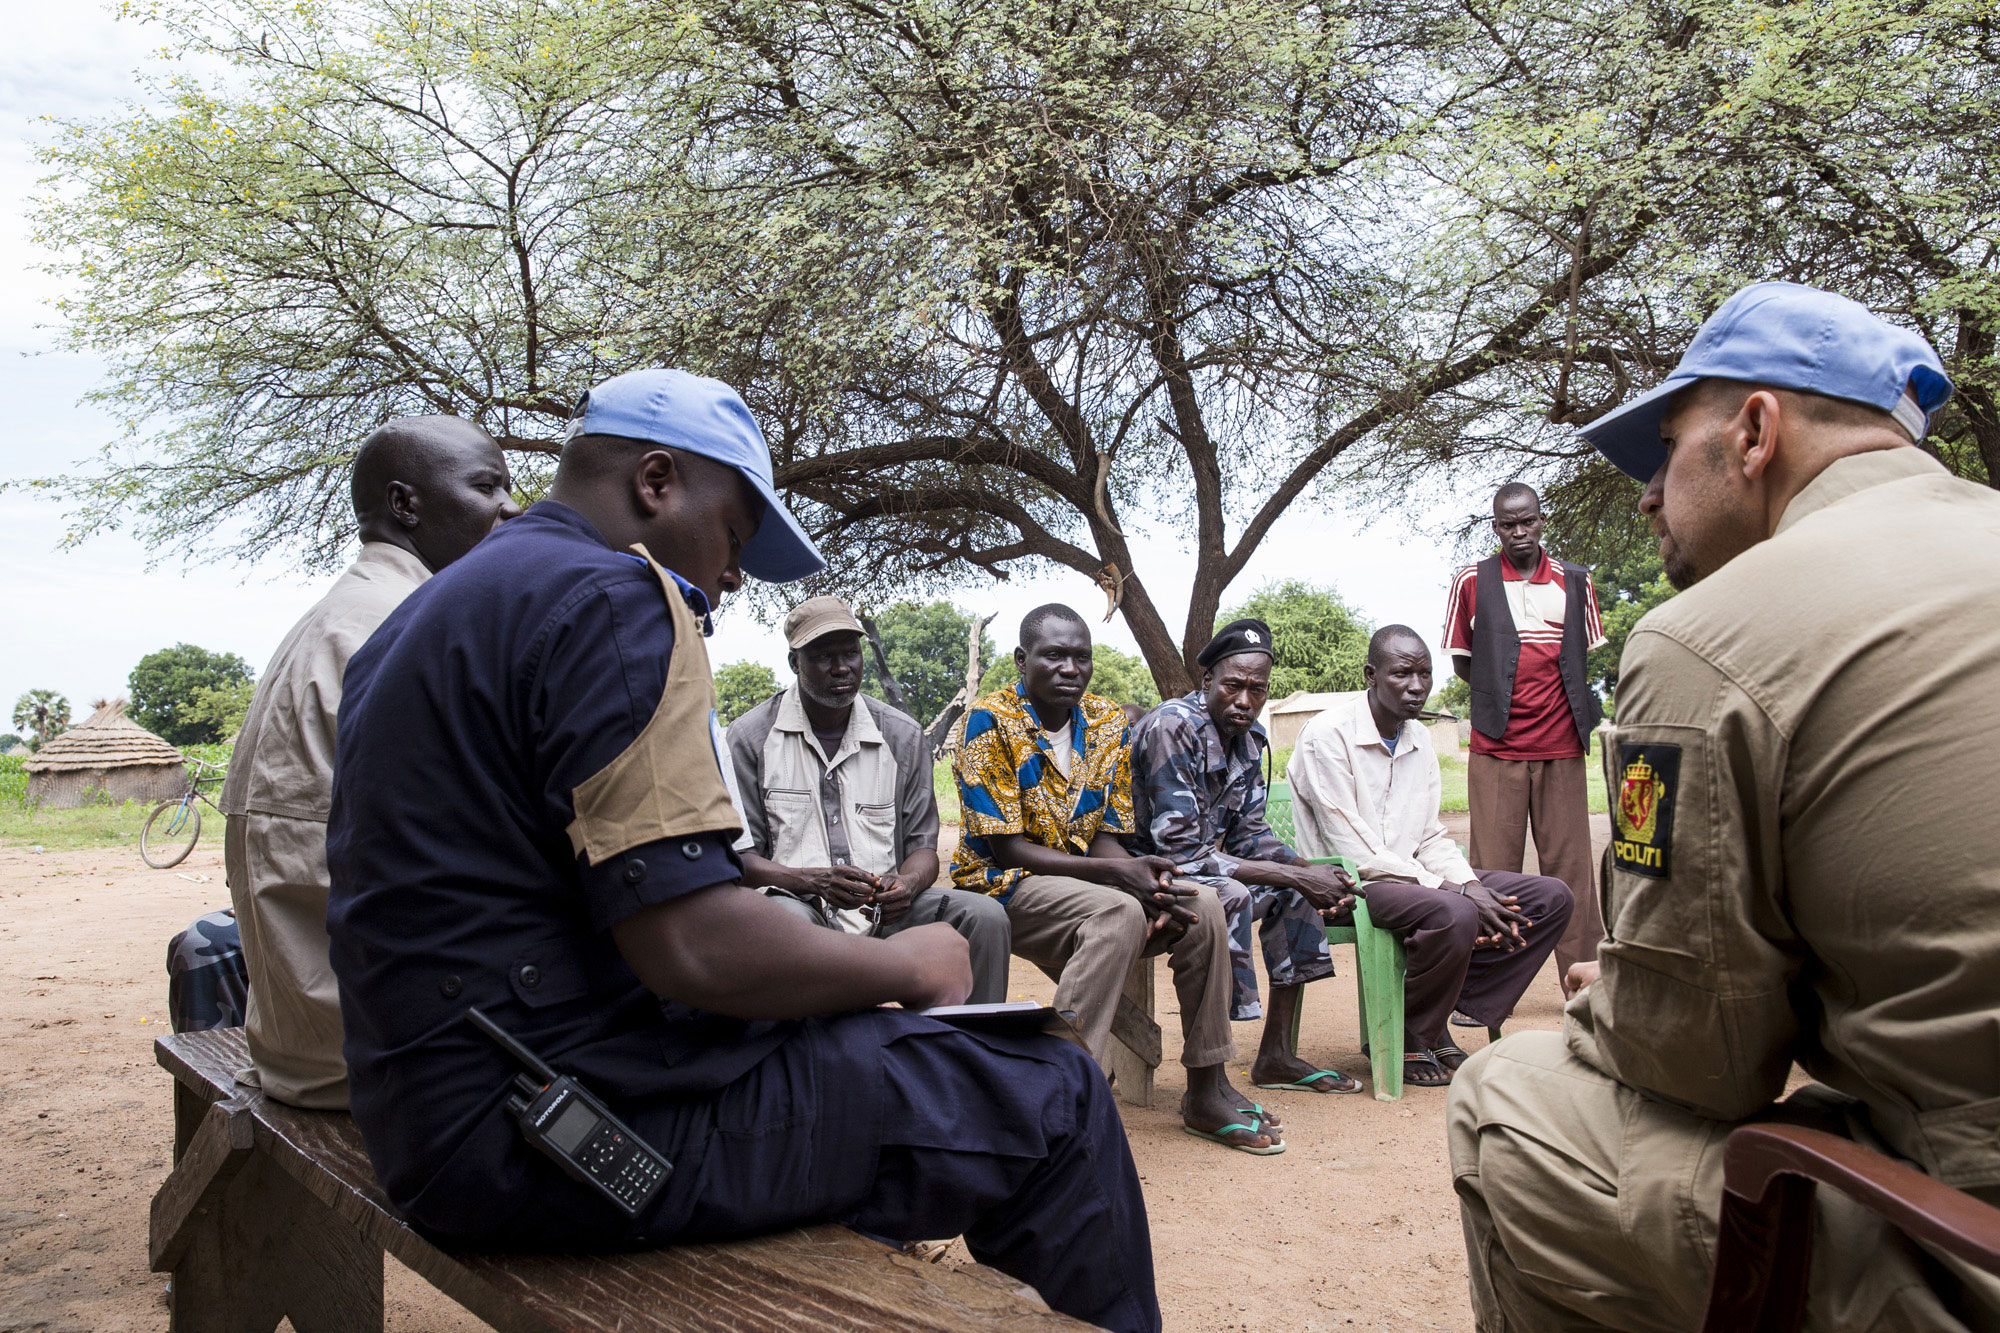 In South Sudan, UN Police with UNMISS visit local police authorities and meet with villagers to assess and report on the general situation in the area, criminal activity, detentions, and other matters that arise. UN Photo/JC McIlwaine